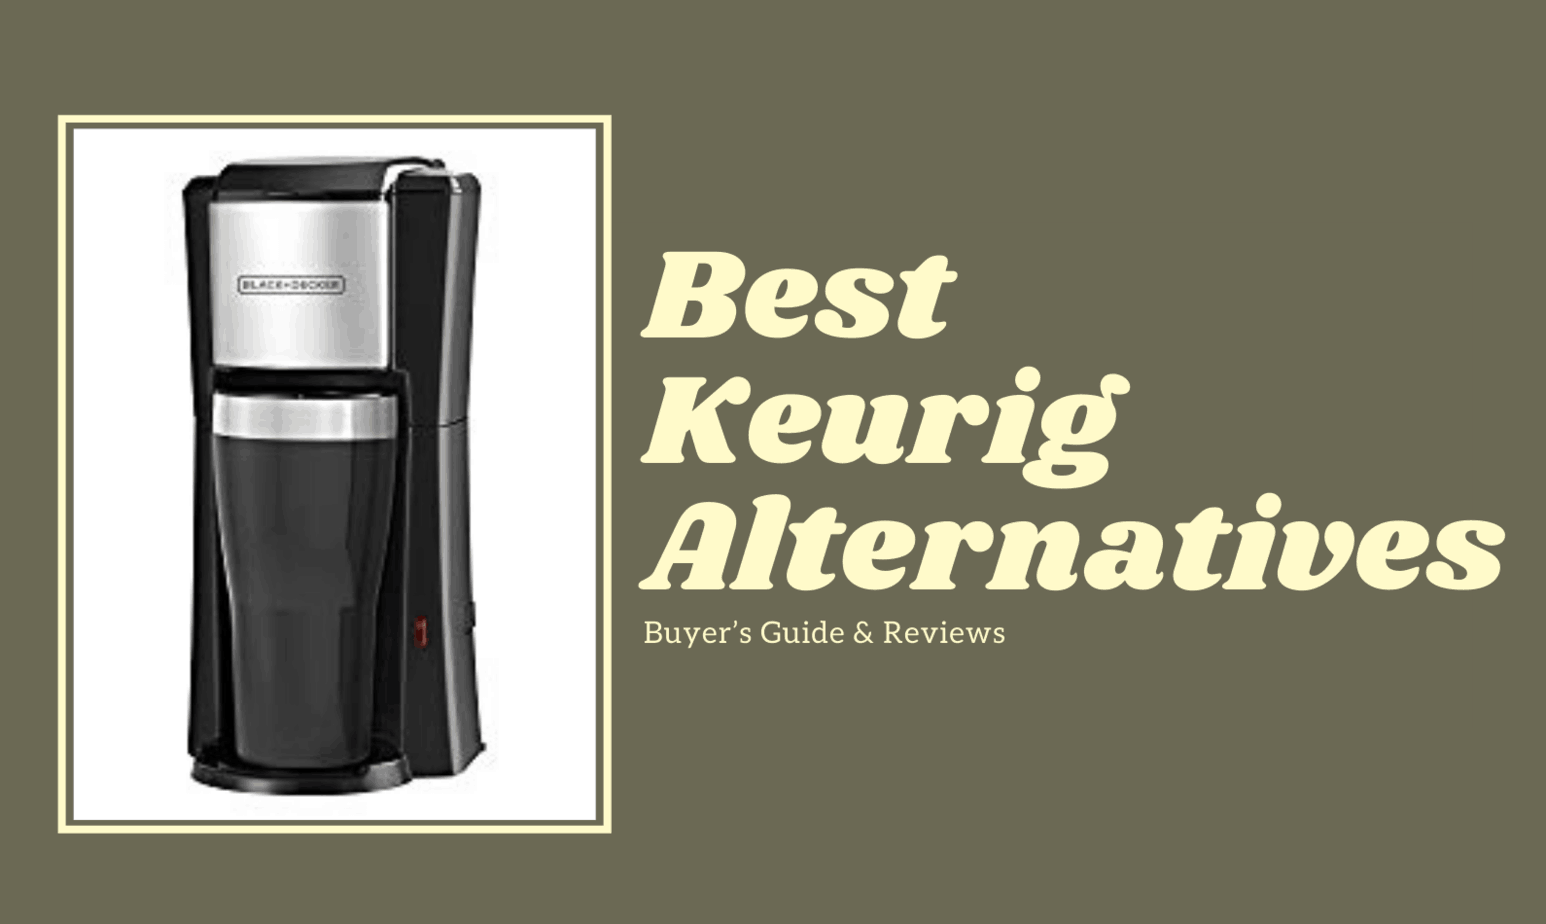 Best Keurig Alternatives